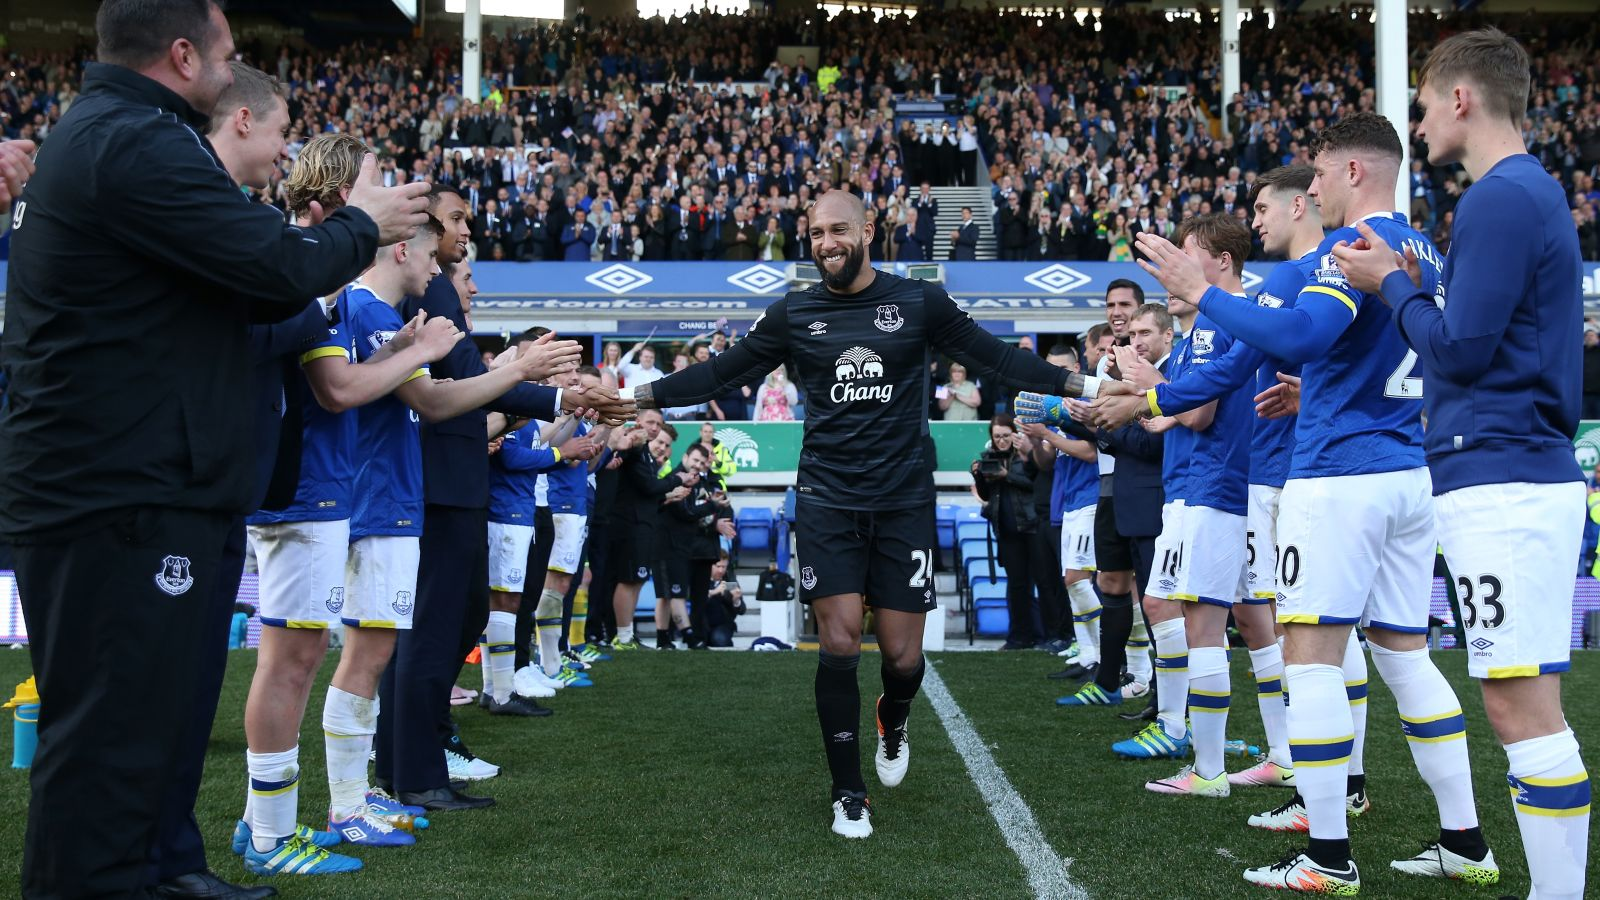 Howard says 'the sky's the limit' for Everton as he waves goodbye